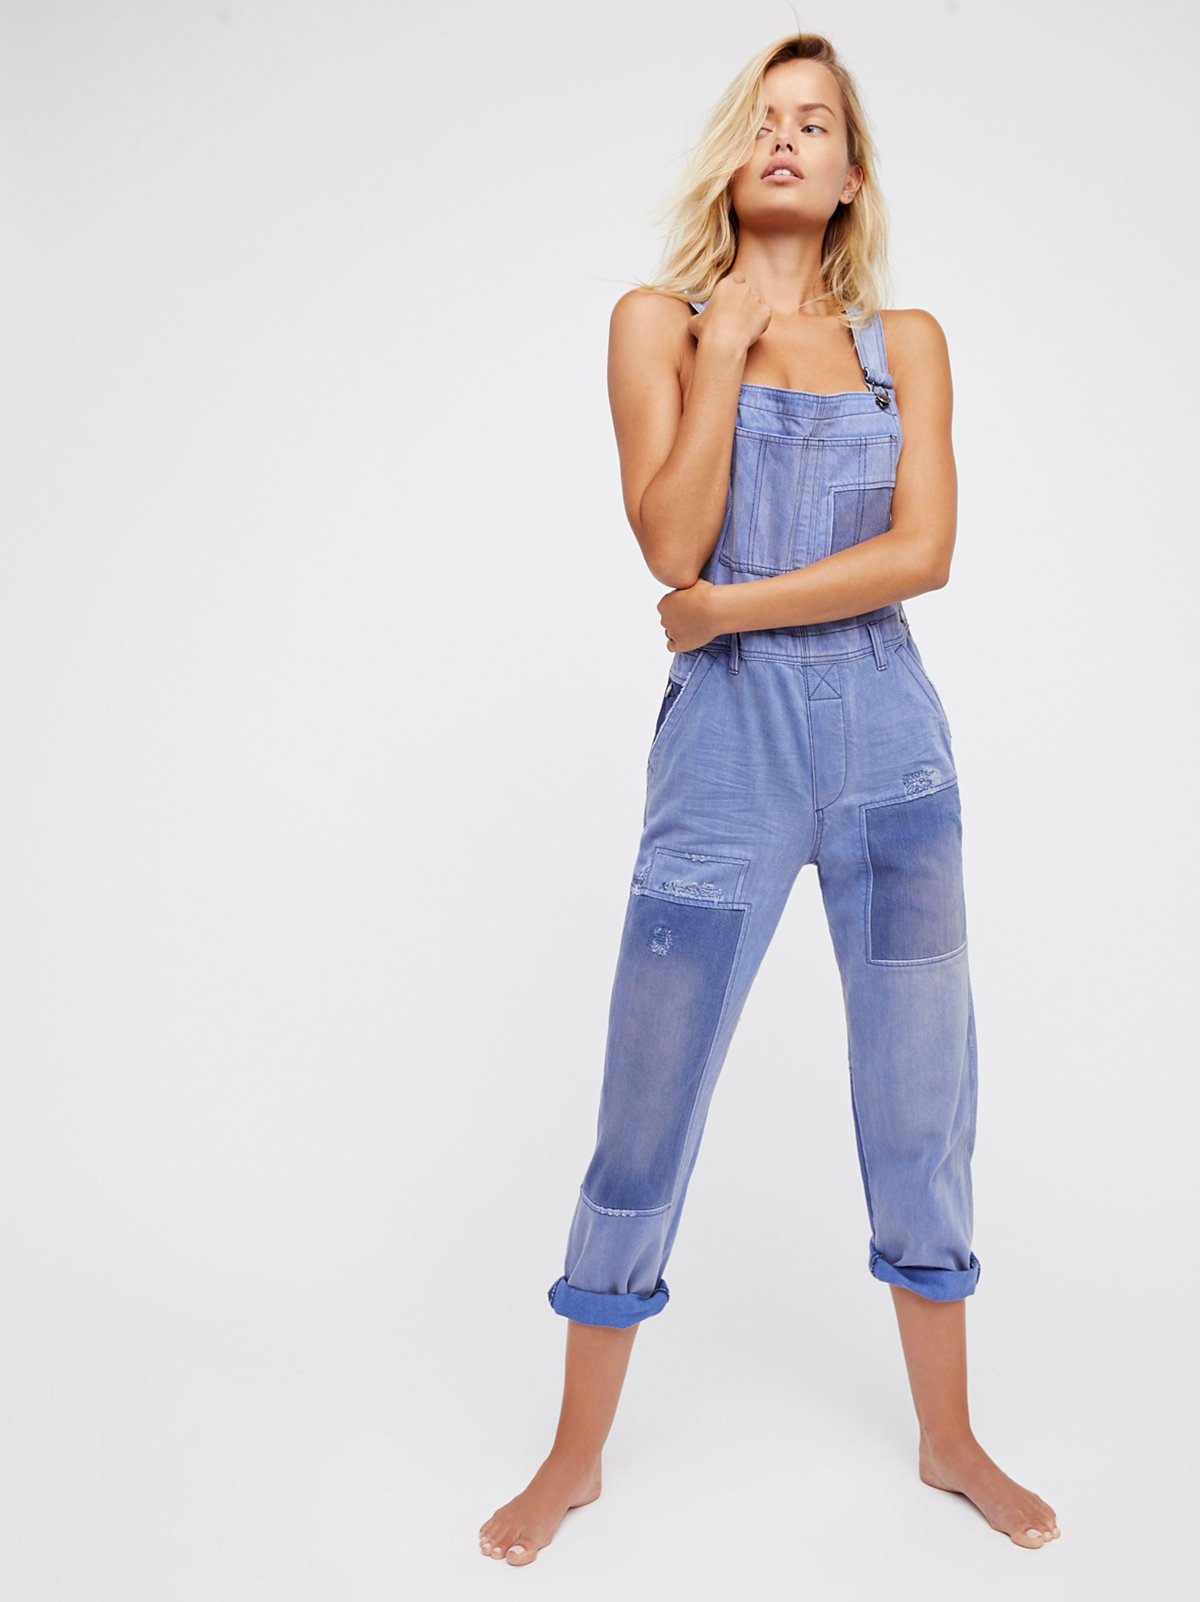 Canvas overalls. Fabrics such as canvas create a modernized twist to classic denim overalls. Canvas can be cotton, linen, or even hemp. The weave differs from denim because it's standard, not twill. This creates a lighter weight fabric that yields two types of canvas: plain and duck.